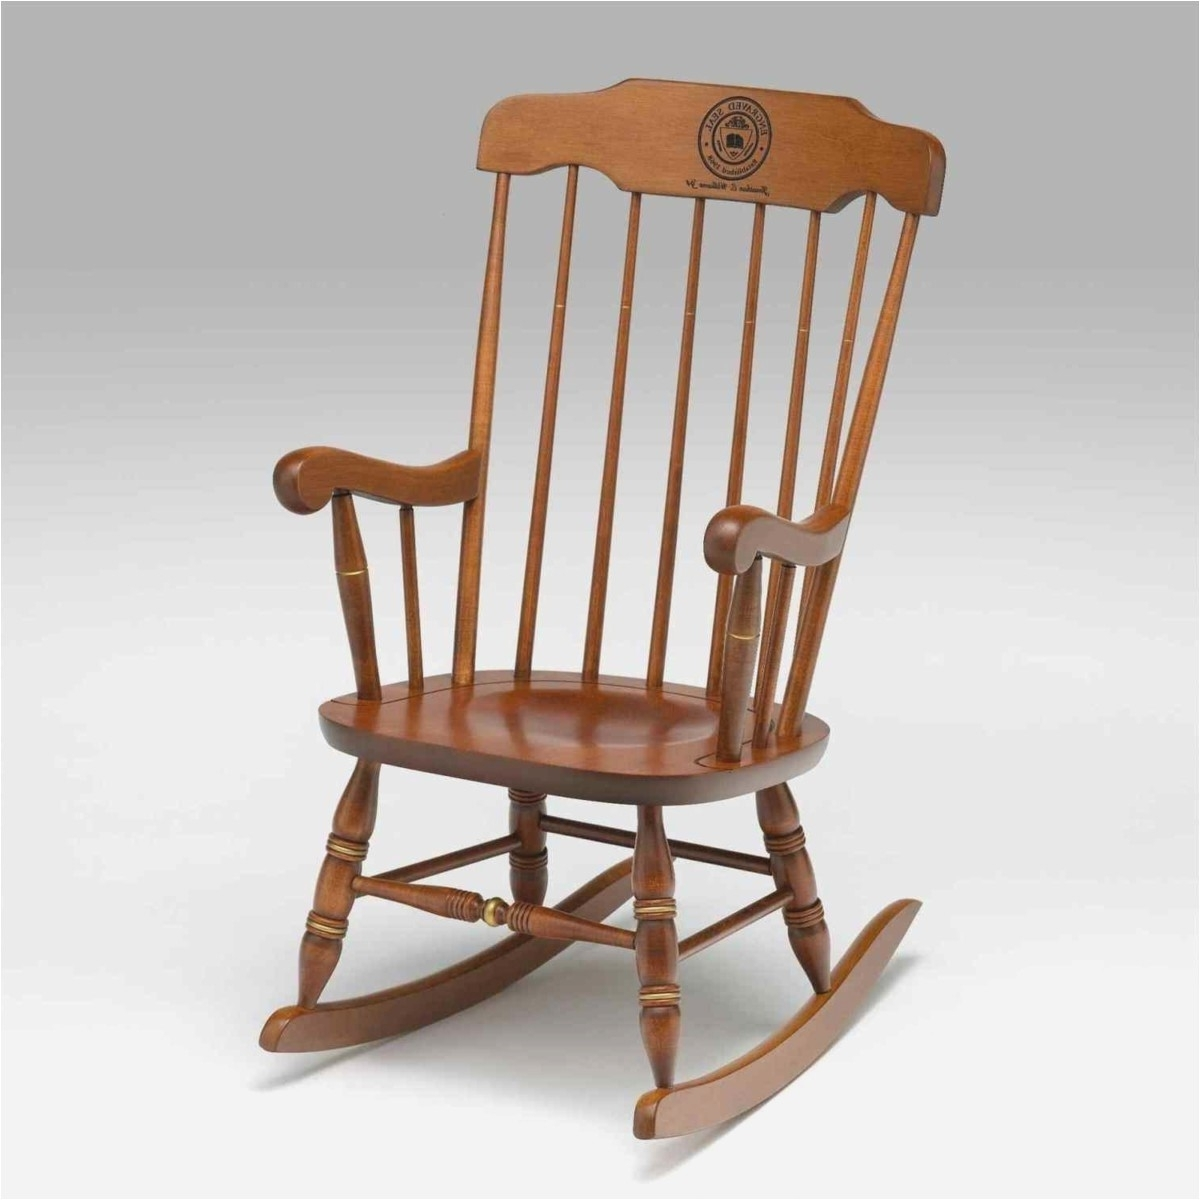 Wooden Rocking Chair With Footrest Archives – Chair Furniture Intended For Well Known Rocking Chairs With Footrest (View 20 of 20)